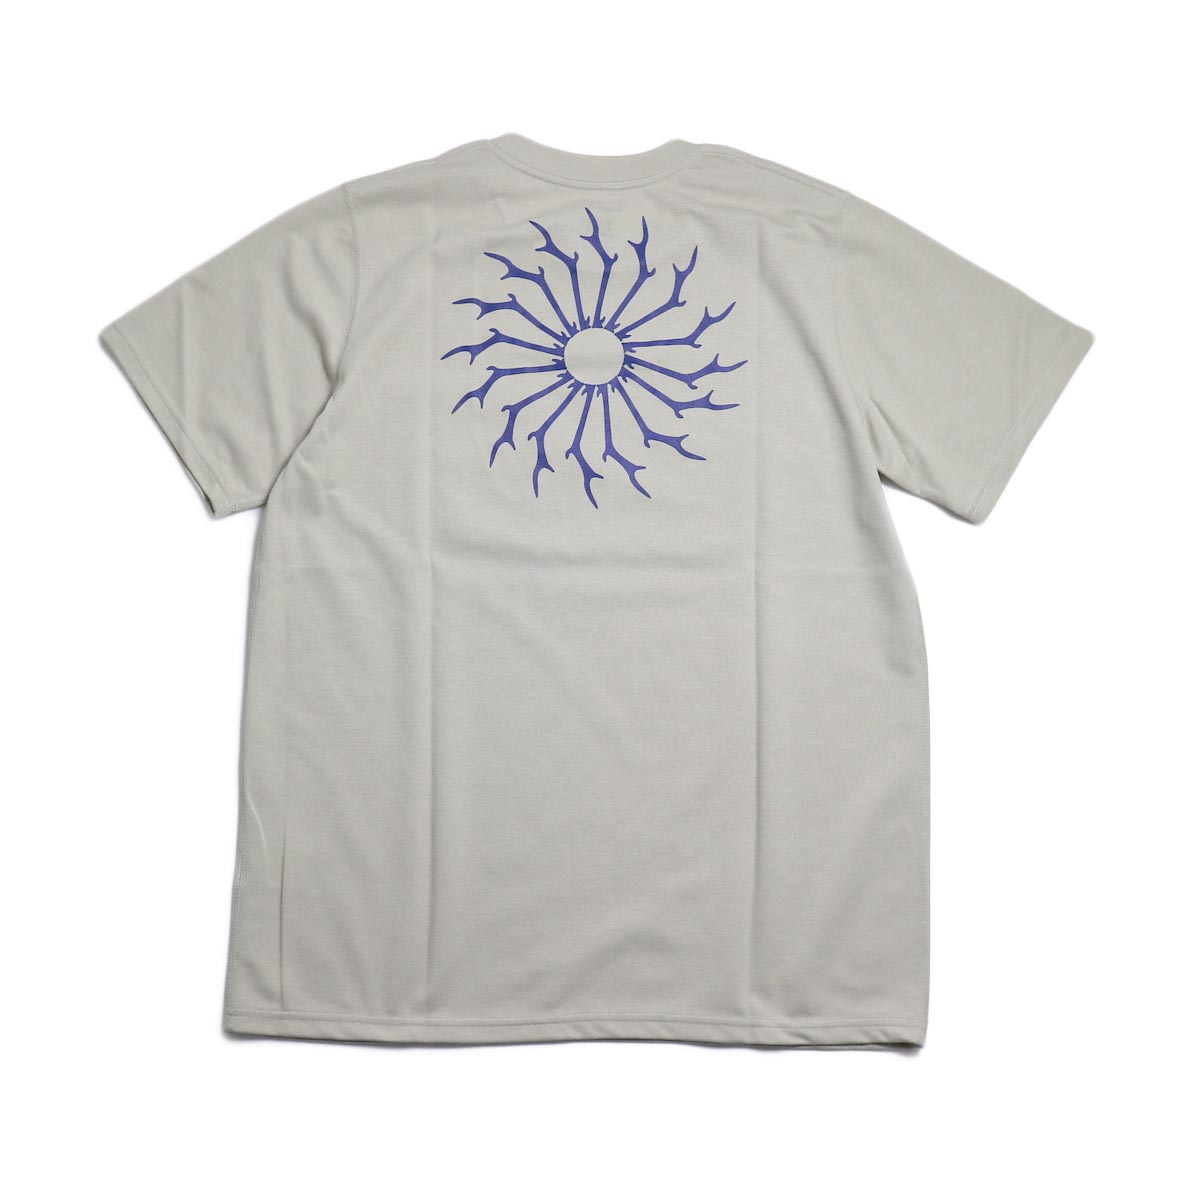 SOUTH2 WEST8 / Round Pocket Tee (Circle Horn) -Gray  背面